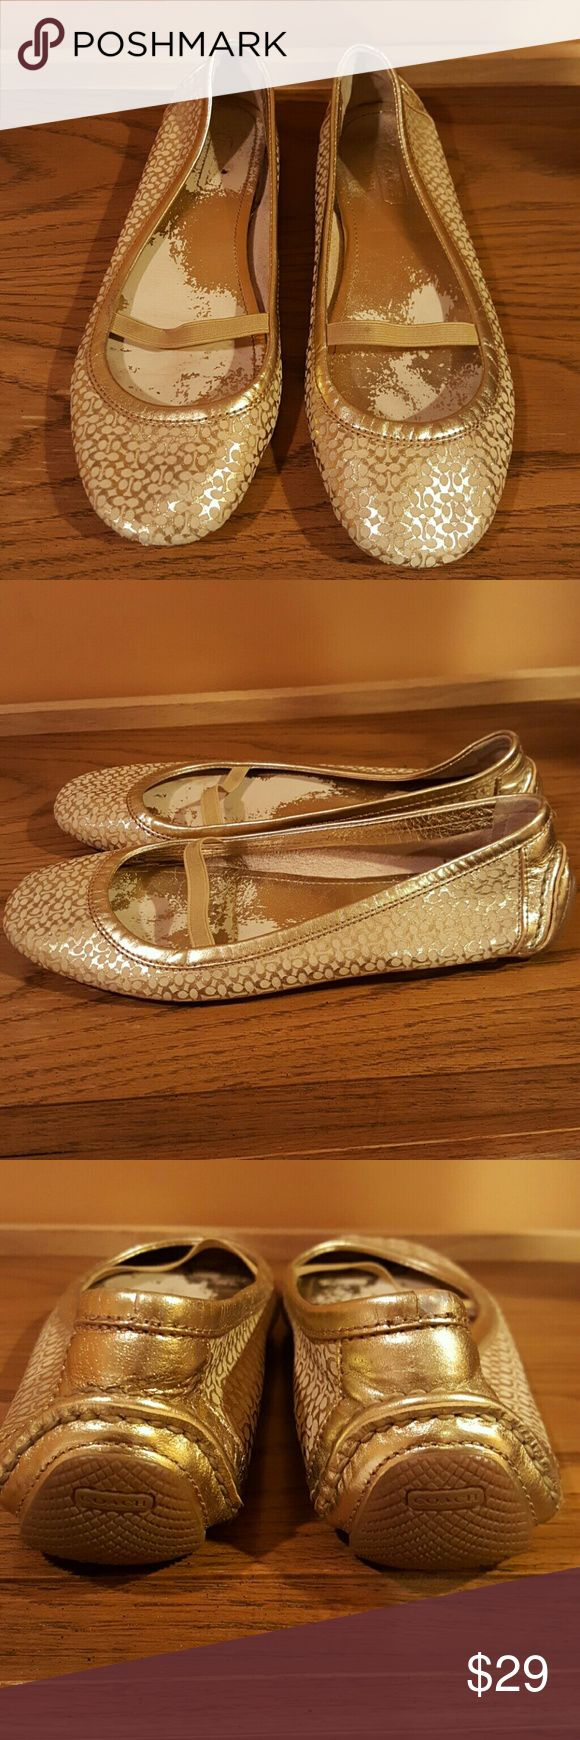 Coach Women's Ballerina Shoes Pre-owned in a good condition. Coach Shoes Flats & Loafers